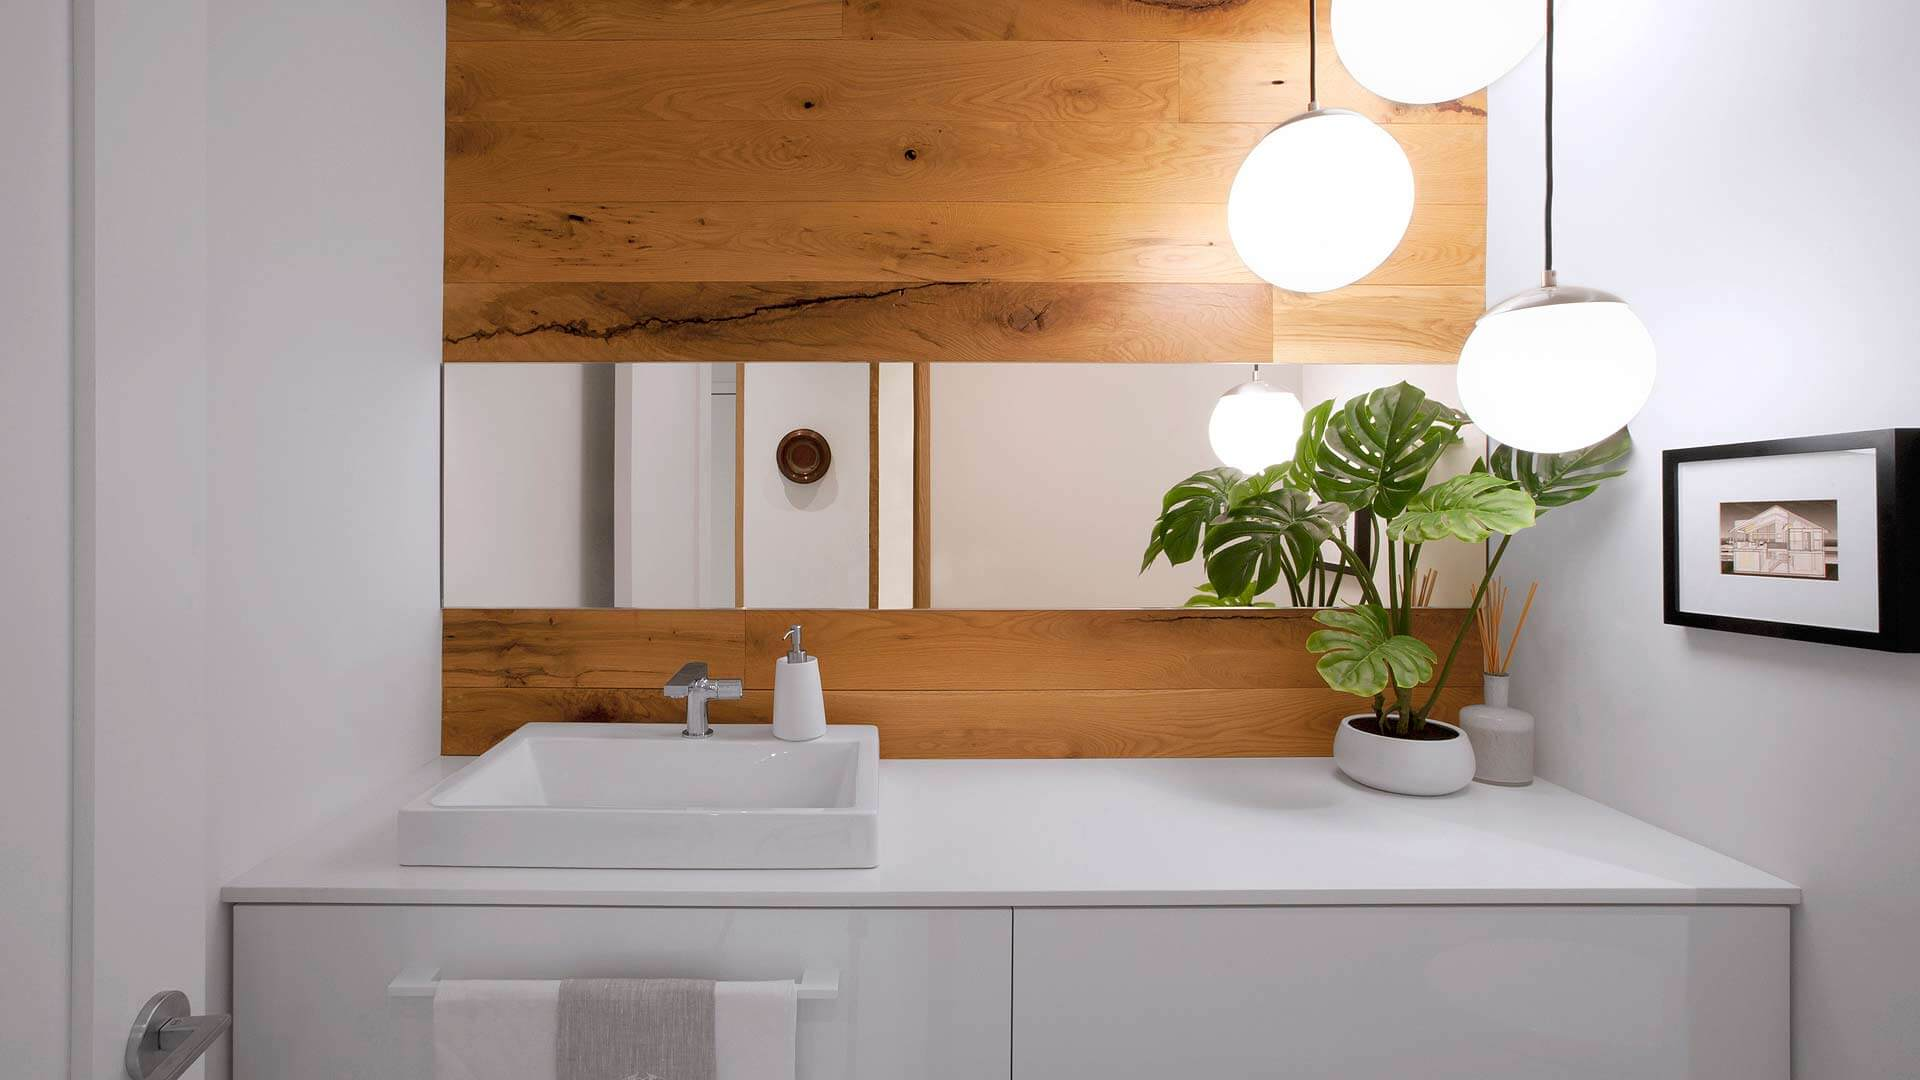 New powder room incorporates white oak into vanity wall with floating white vanity, horizontal mirror, and ball pendant lighting - Modern Lakehouse Renovation - Clearwater - HAUS | Architecture For Modern Lifestyles - Christopher Short, Architect - Derek Mills, Project manager - WERK | Building Modern (Construction Manager + Custom Builder)